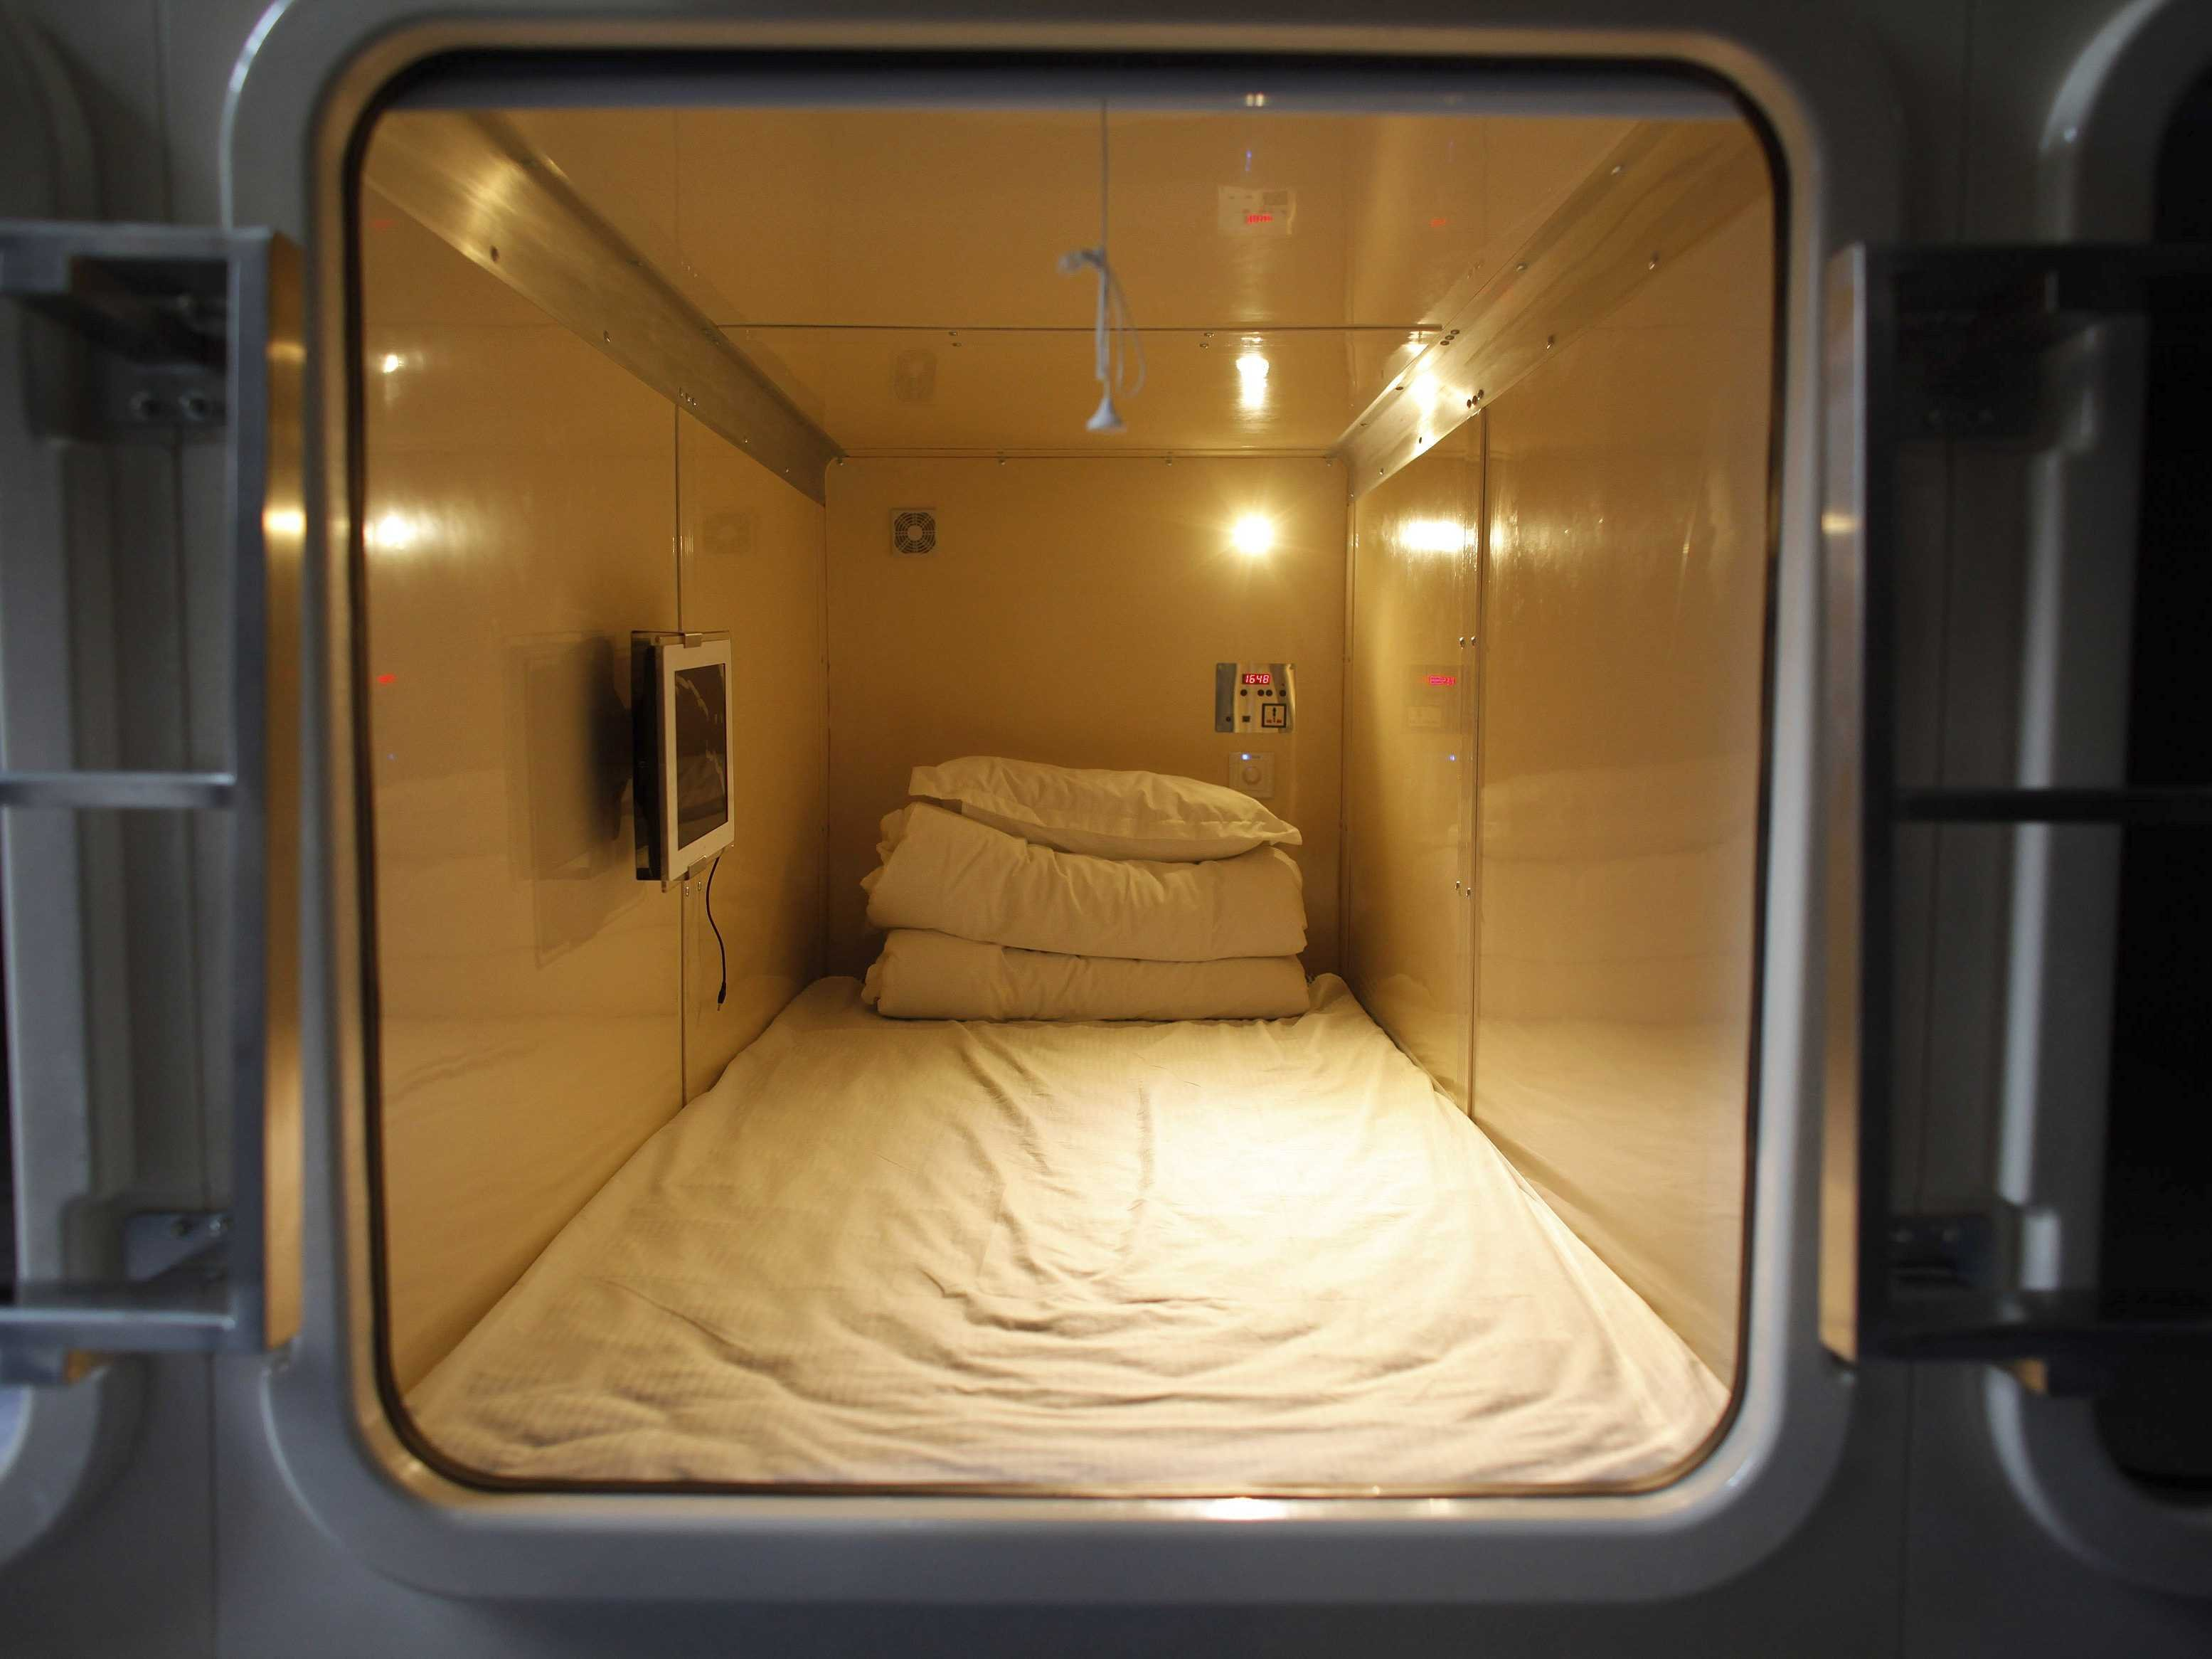 China first capsule hotel